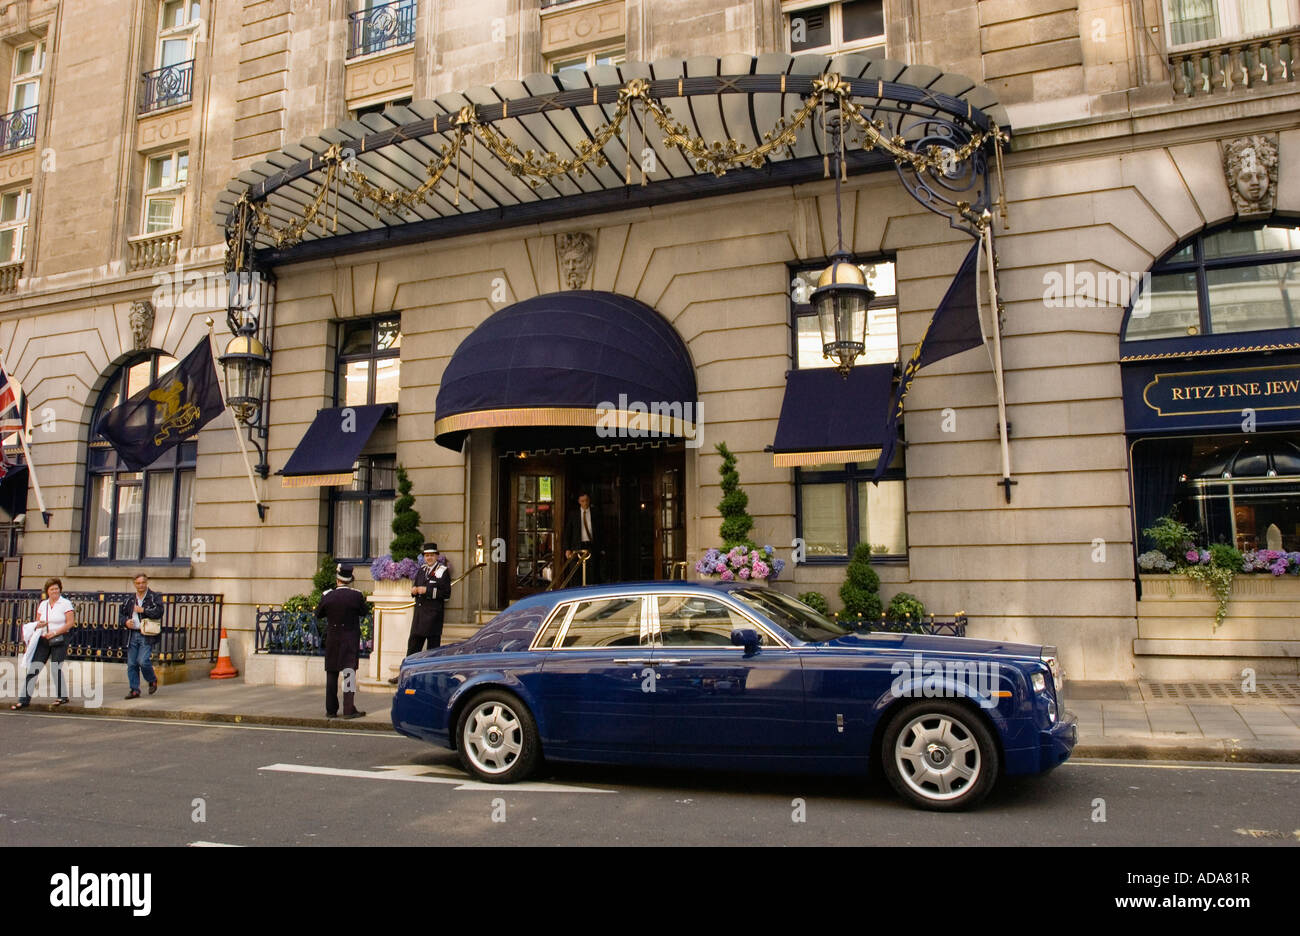 Car parked outside the hotel 'The Ritz', Piccadilly,  London, England - Stock Image